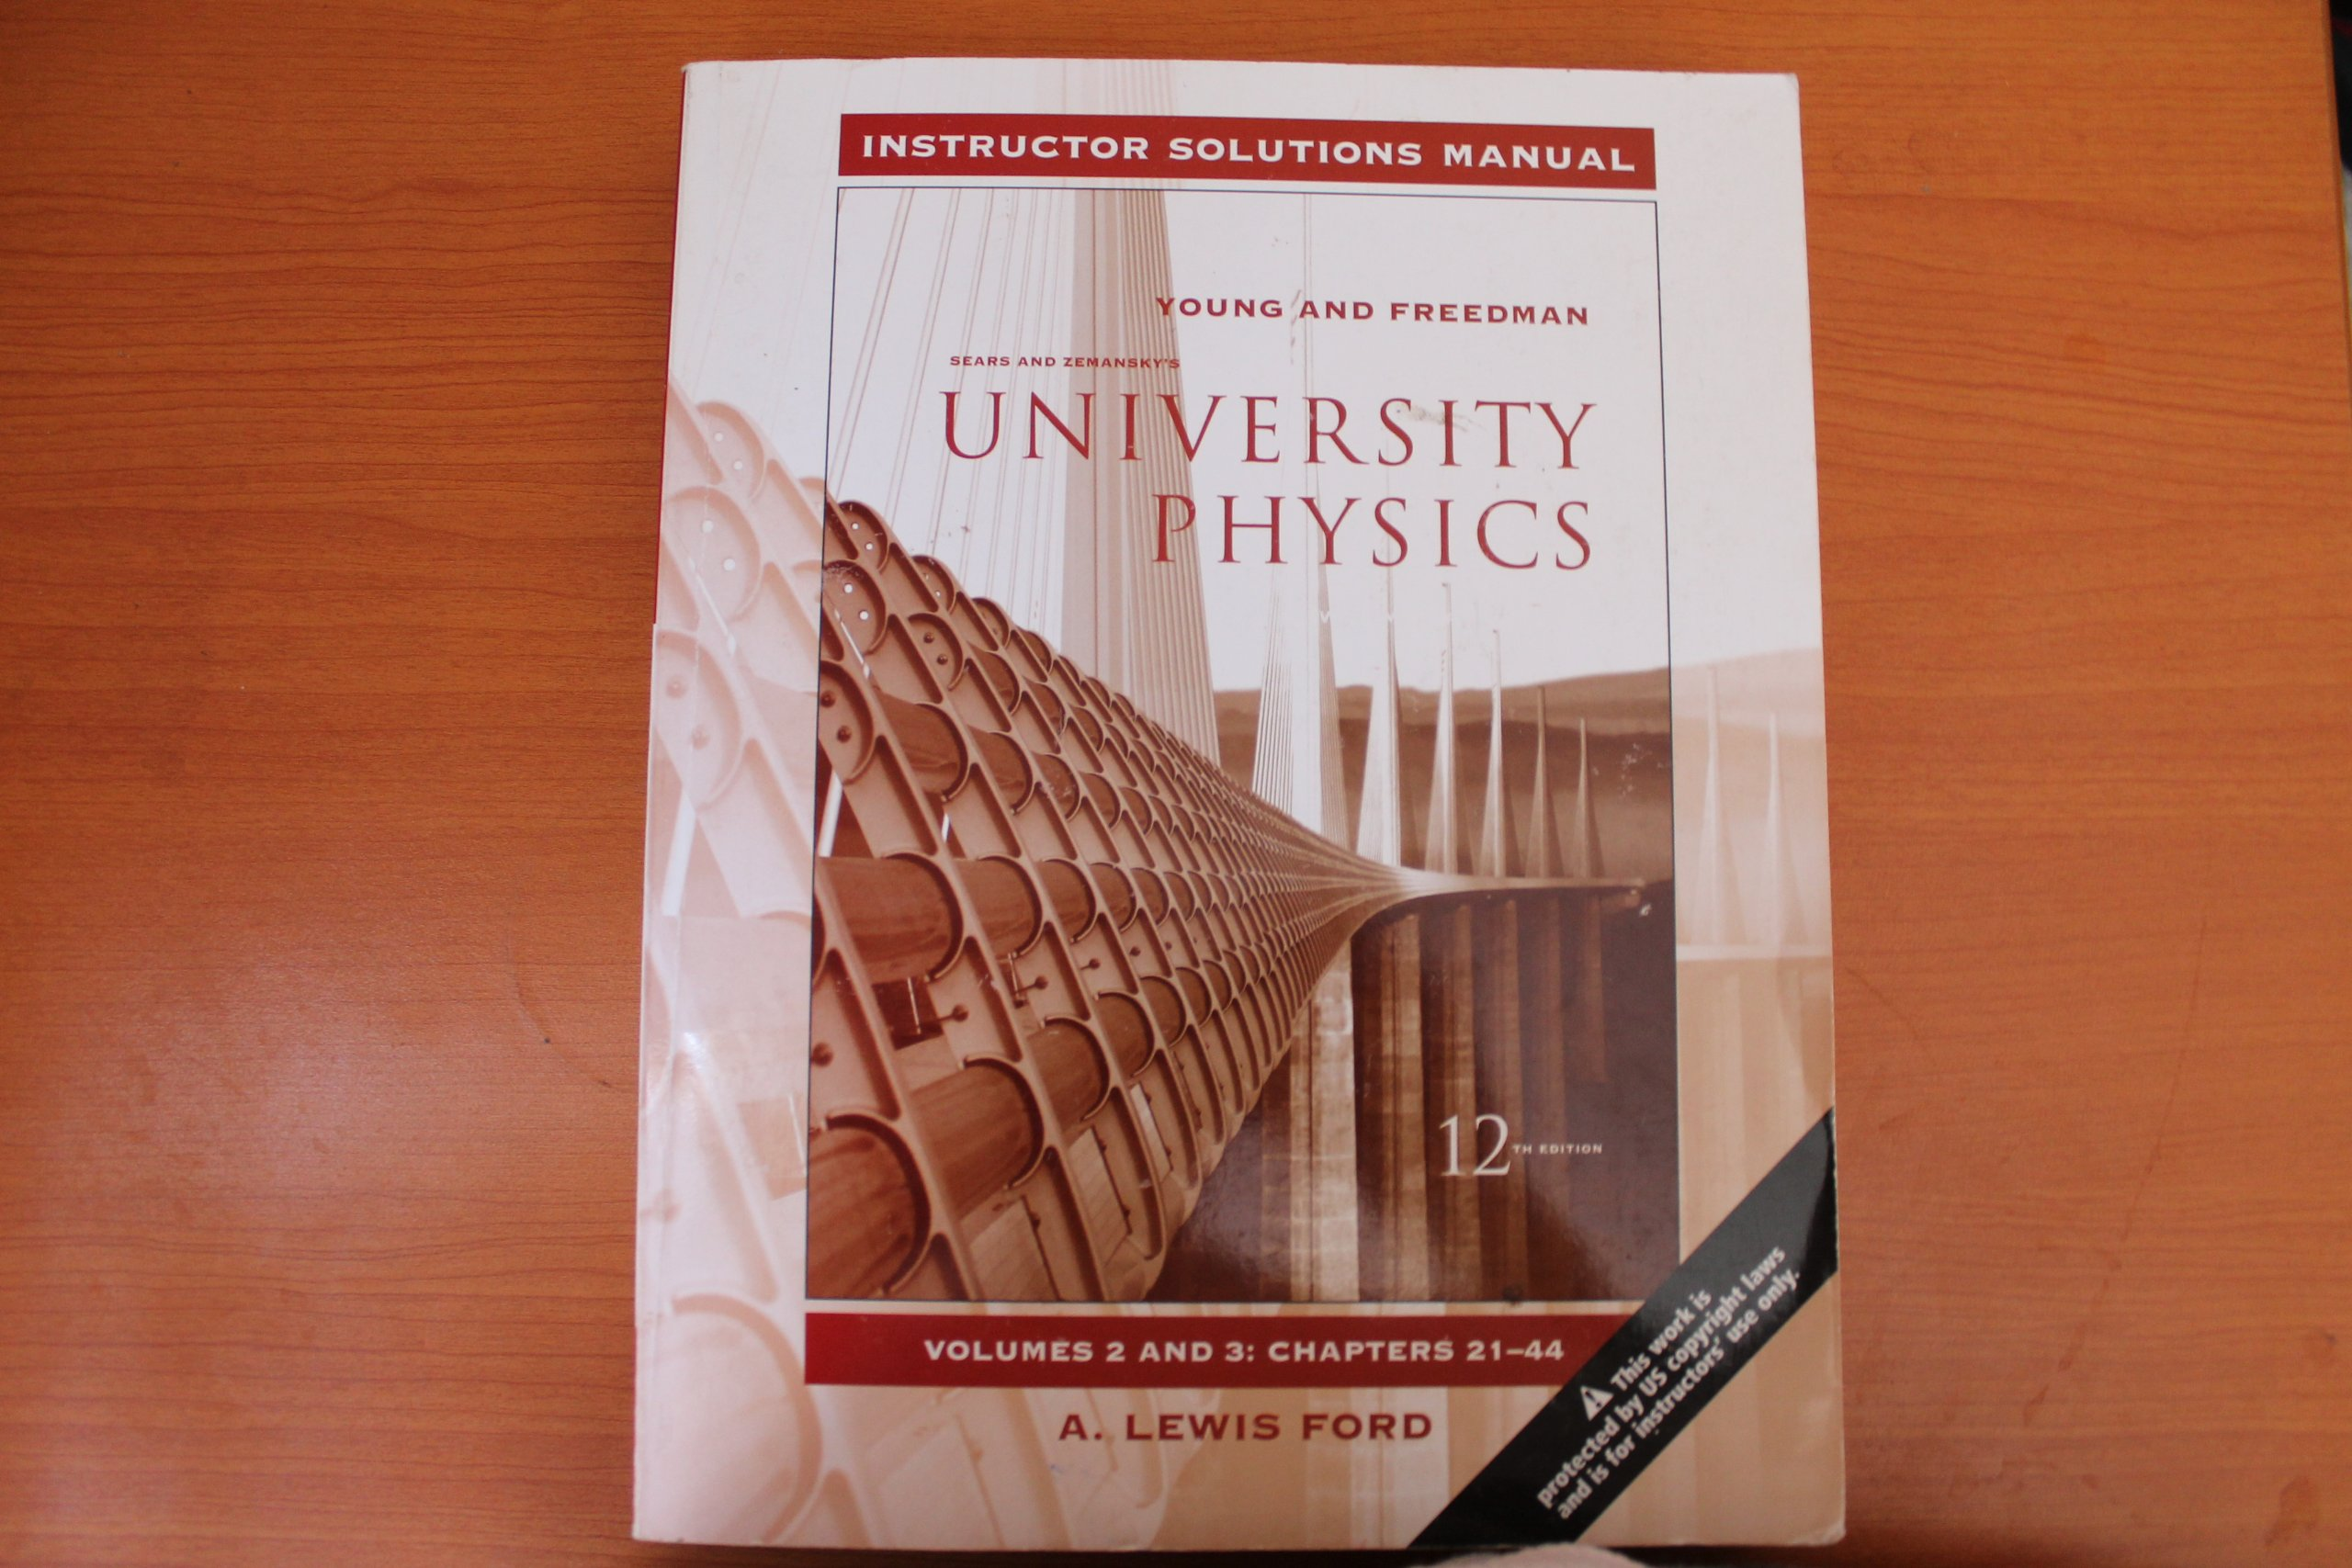 University Physics Instructor Solutions Manual Vol. 2 & 3, Chapters 21-44  (2 & 3): A. Lewis Ford, Sears & Zemansky, Young & Freedman: 9780321492104:  ...